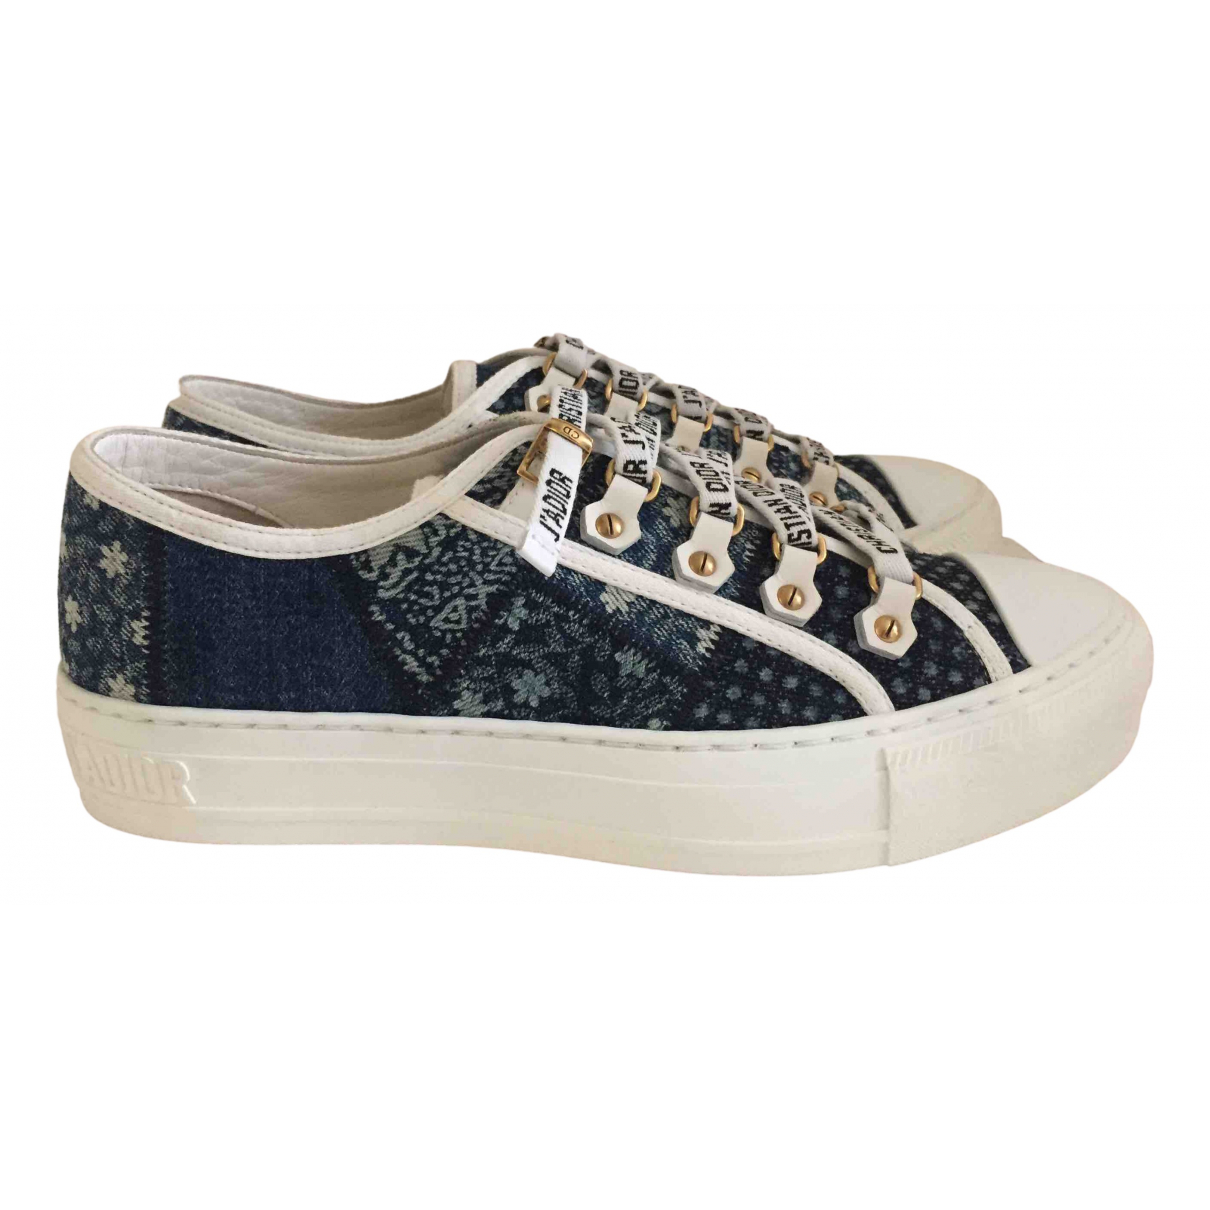 Dior Walk 'n' Dior Blue Cloth Trainers for Women 37.5 EU